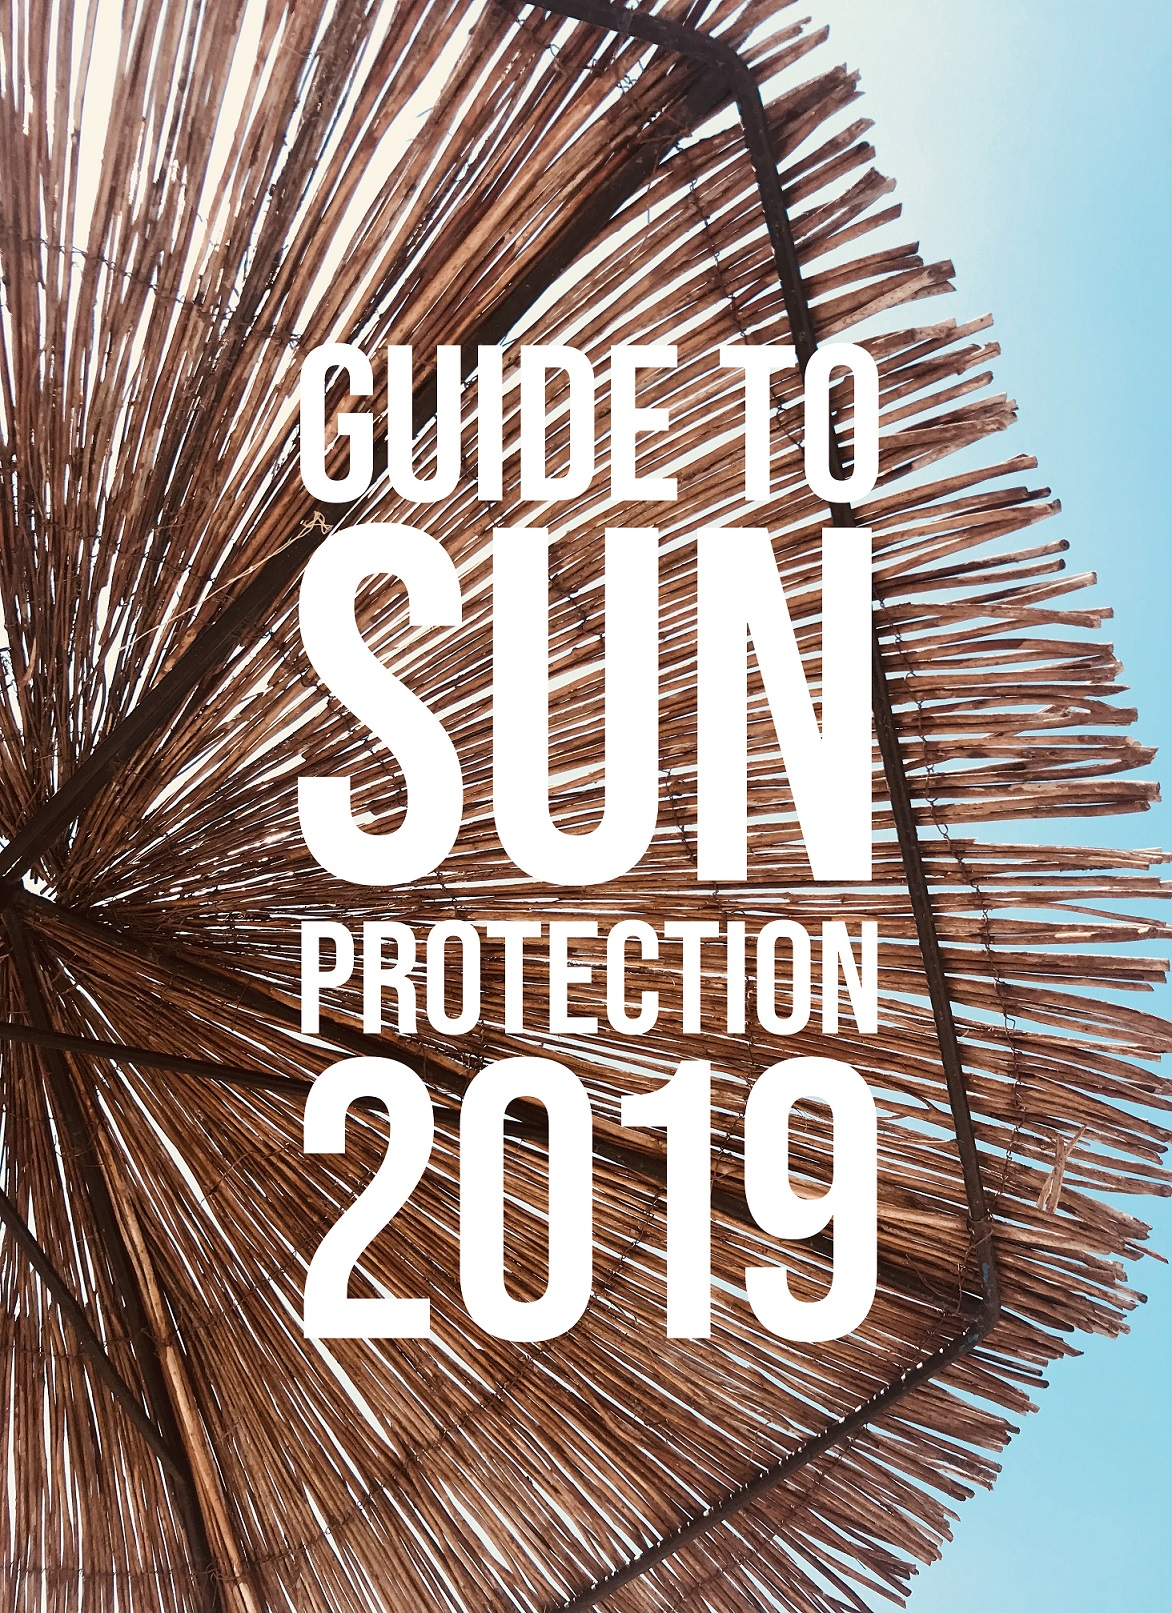 Sun Protection 2019 sunny picture blue sky parasol